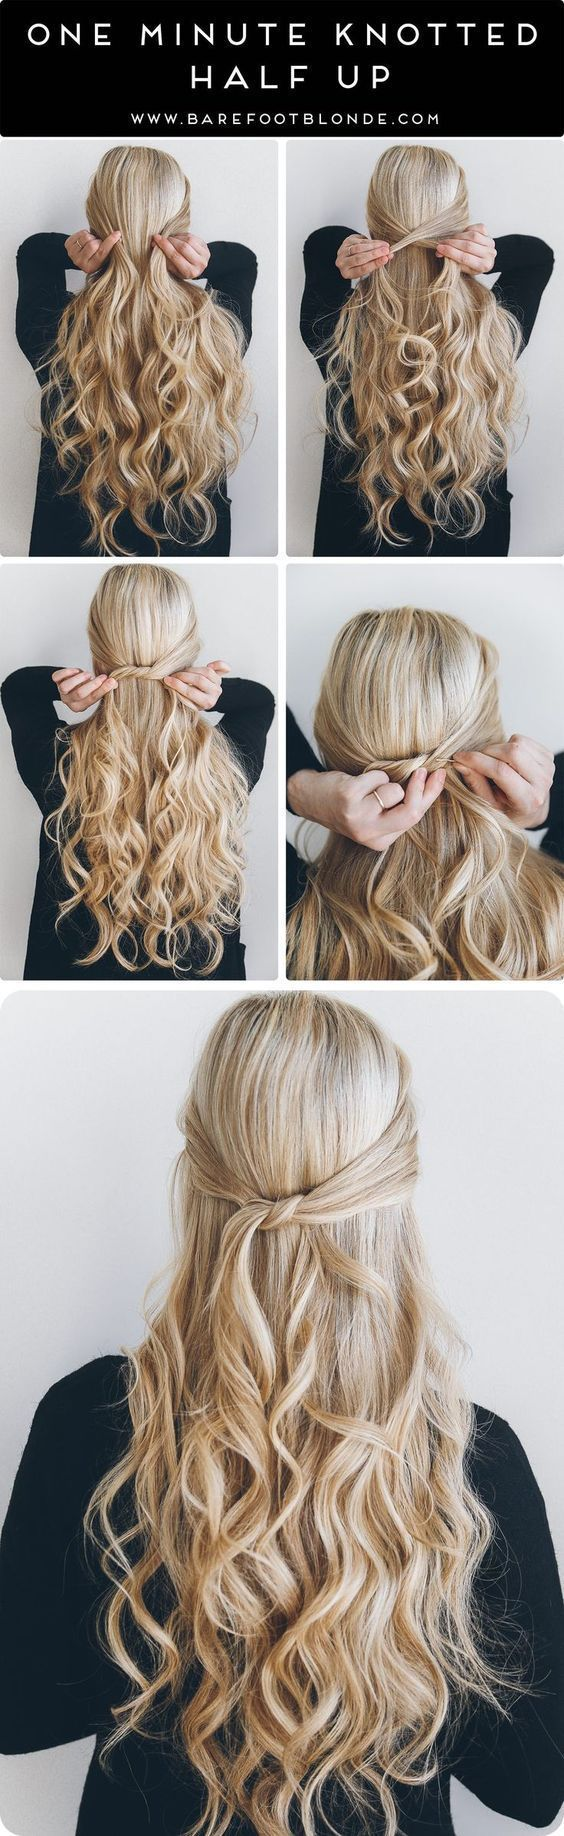 hair style best 25 popular hairstyles ideas on popular 6718